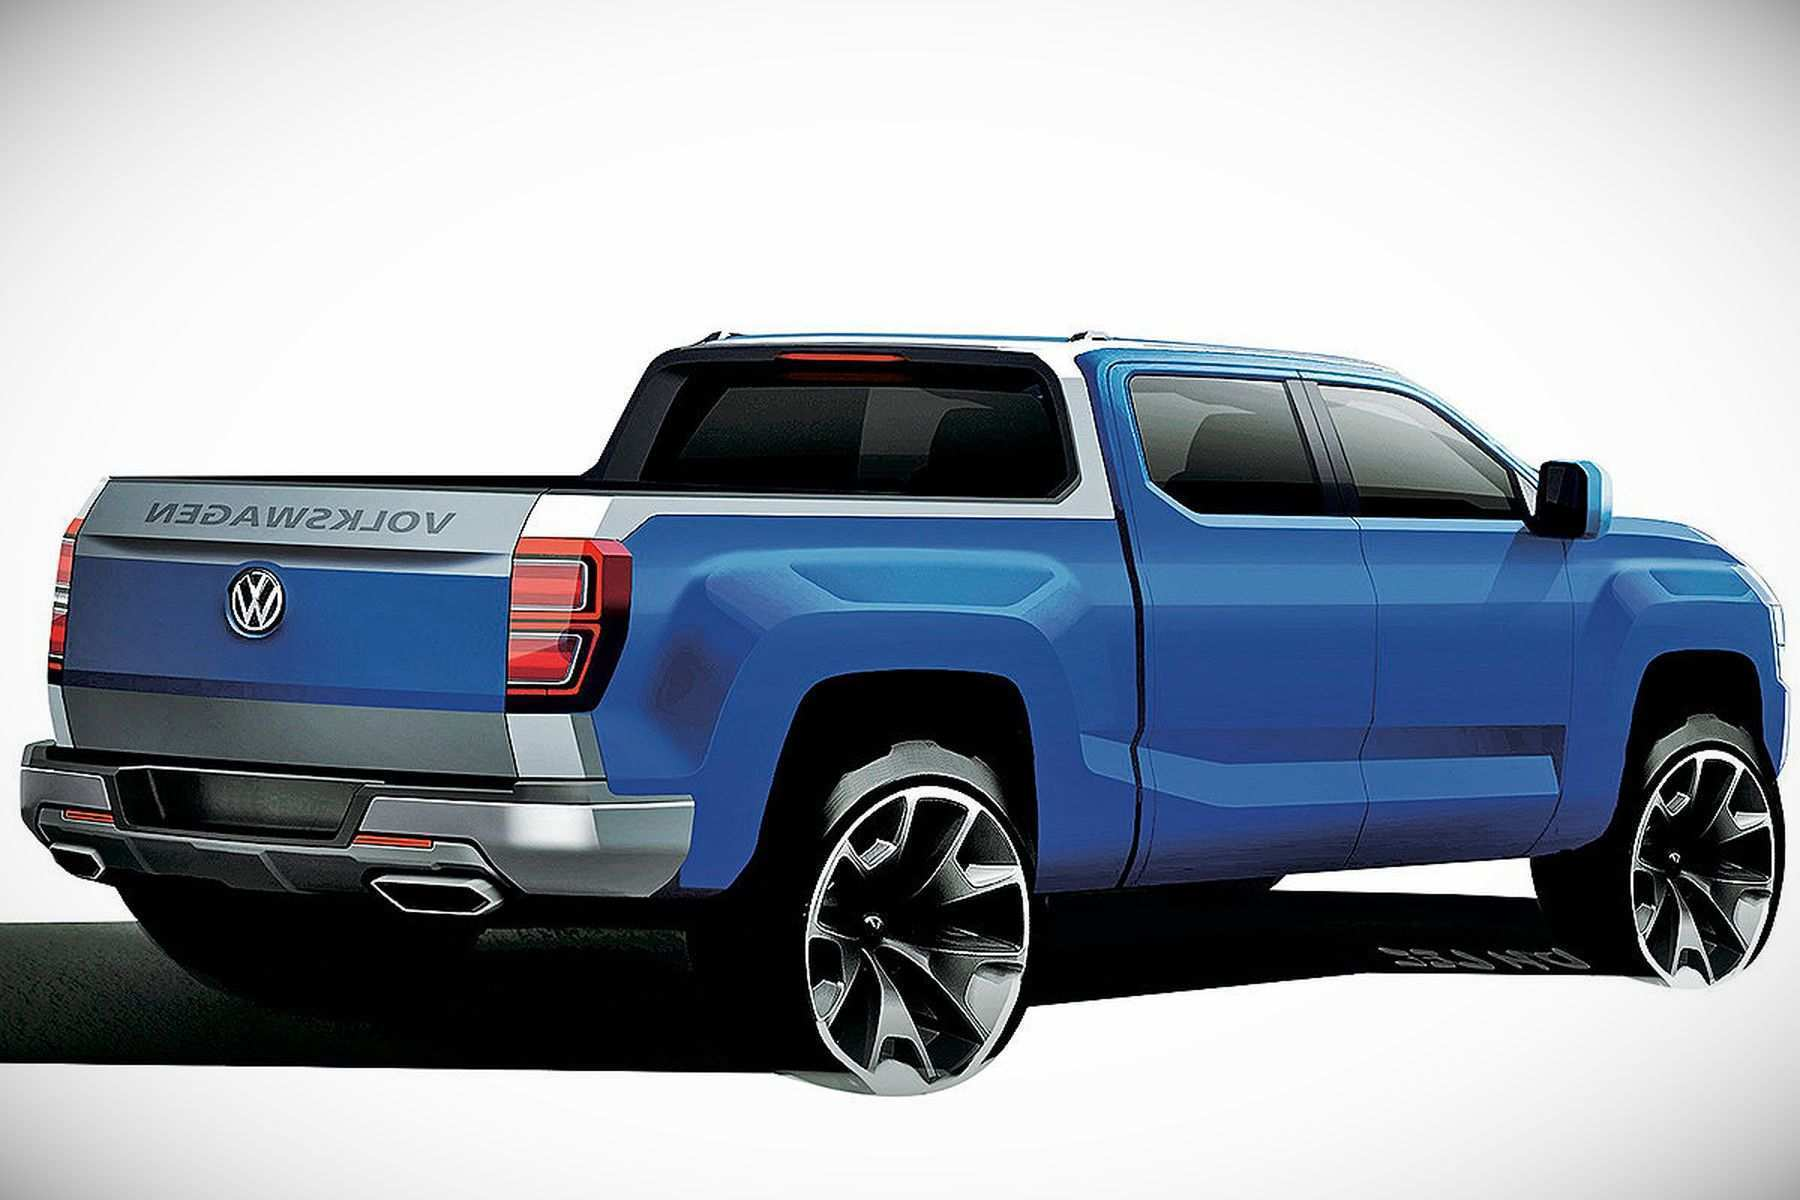 48 The 2020 VW Amarok Price Design And Review